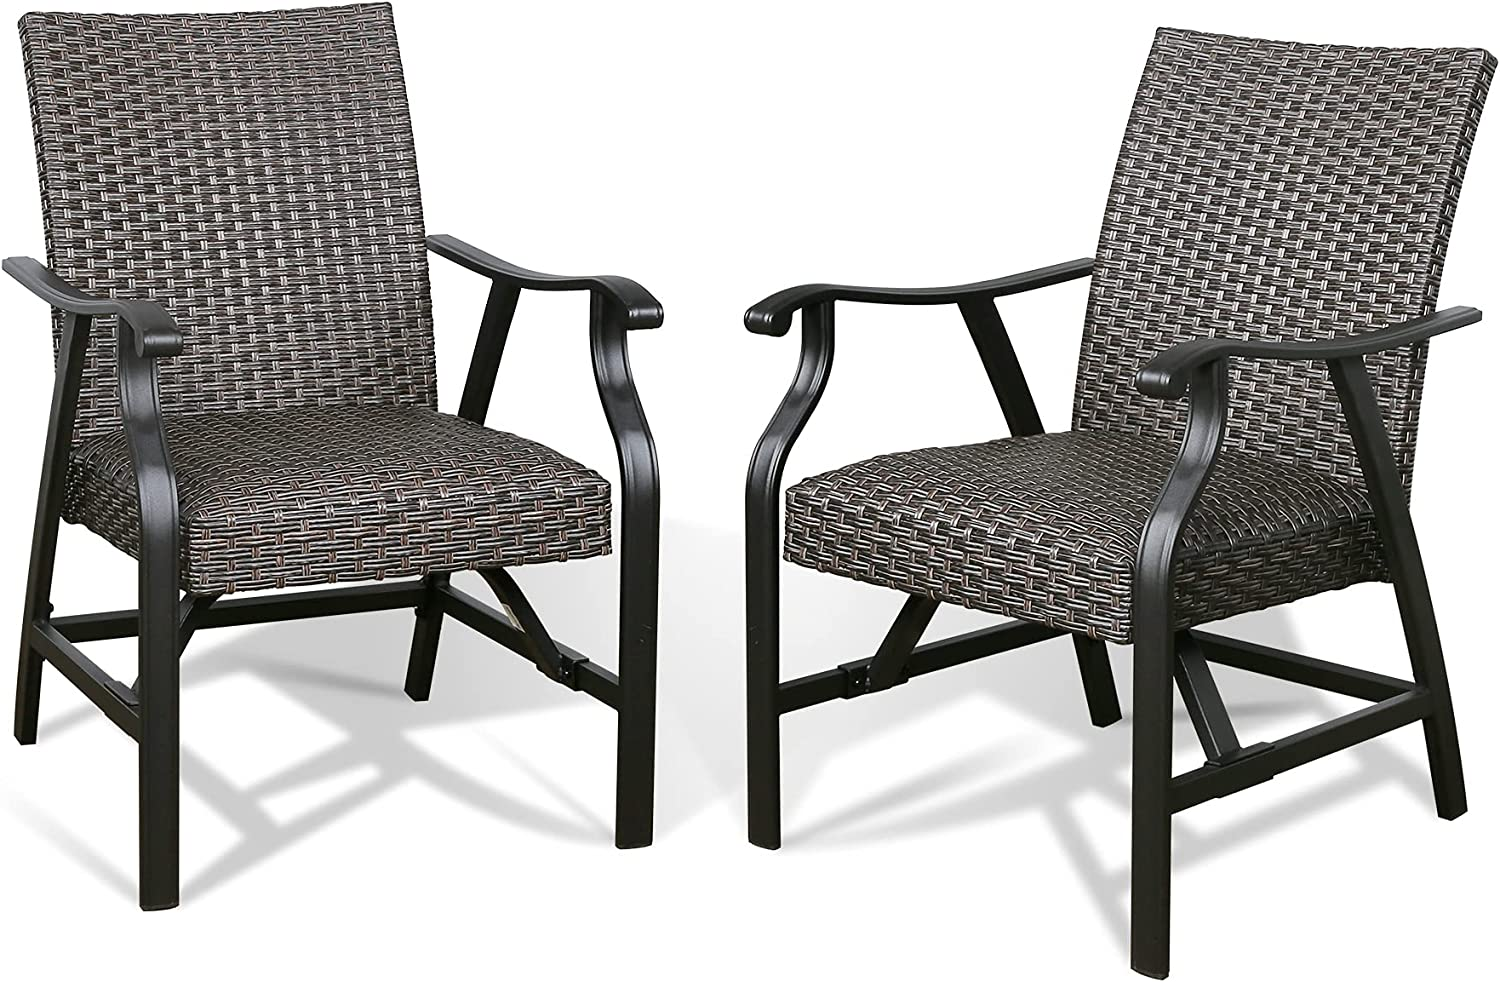 PATIO Max 48% OFF TREE Outdoor Rattan Dining Rocki Patio Chairs with Armrest trend rank